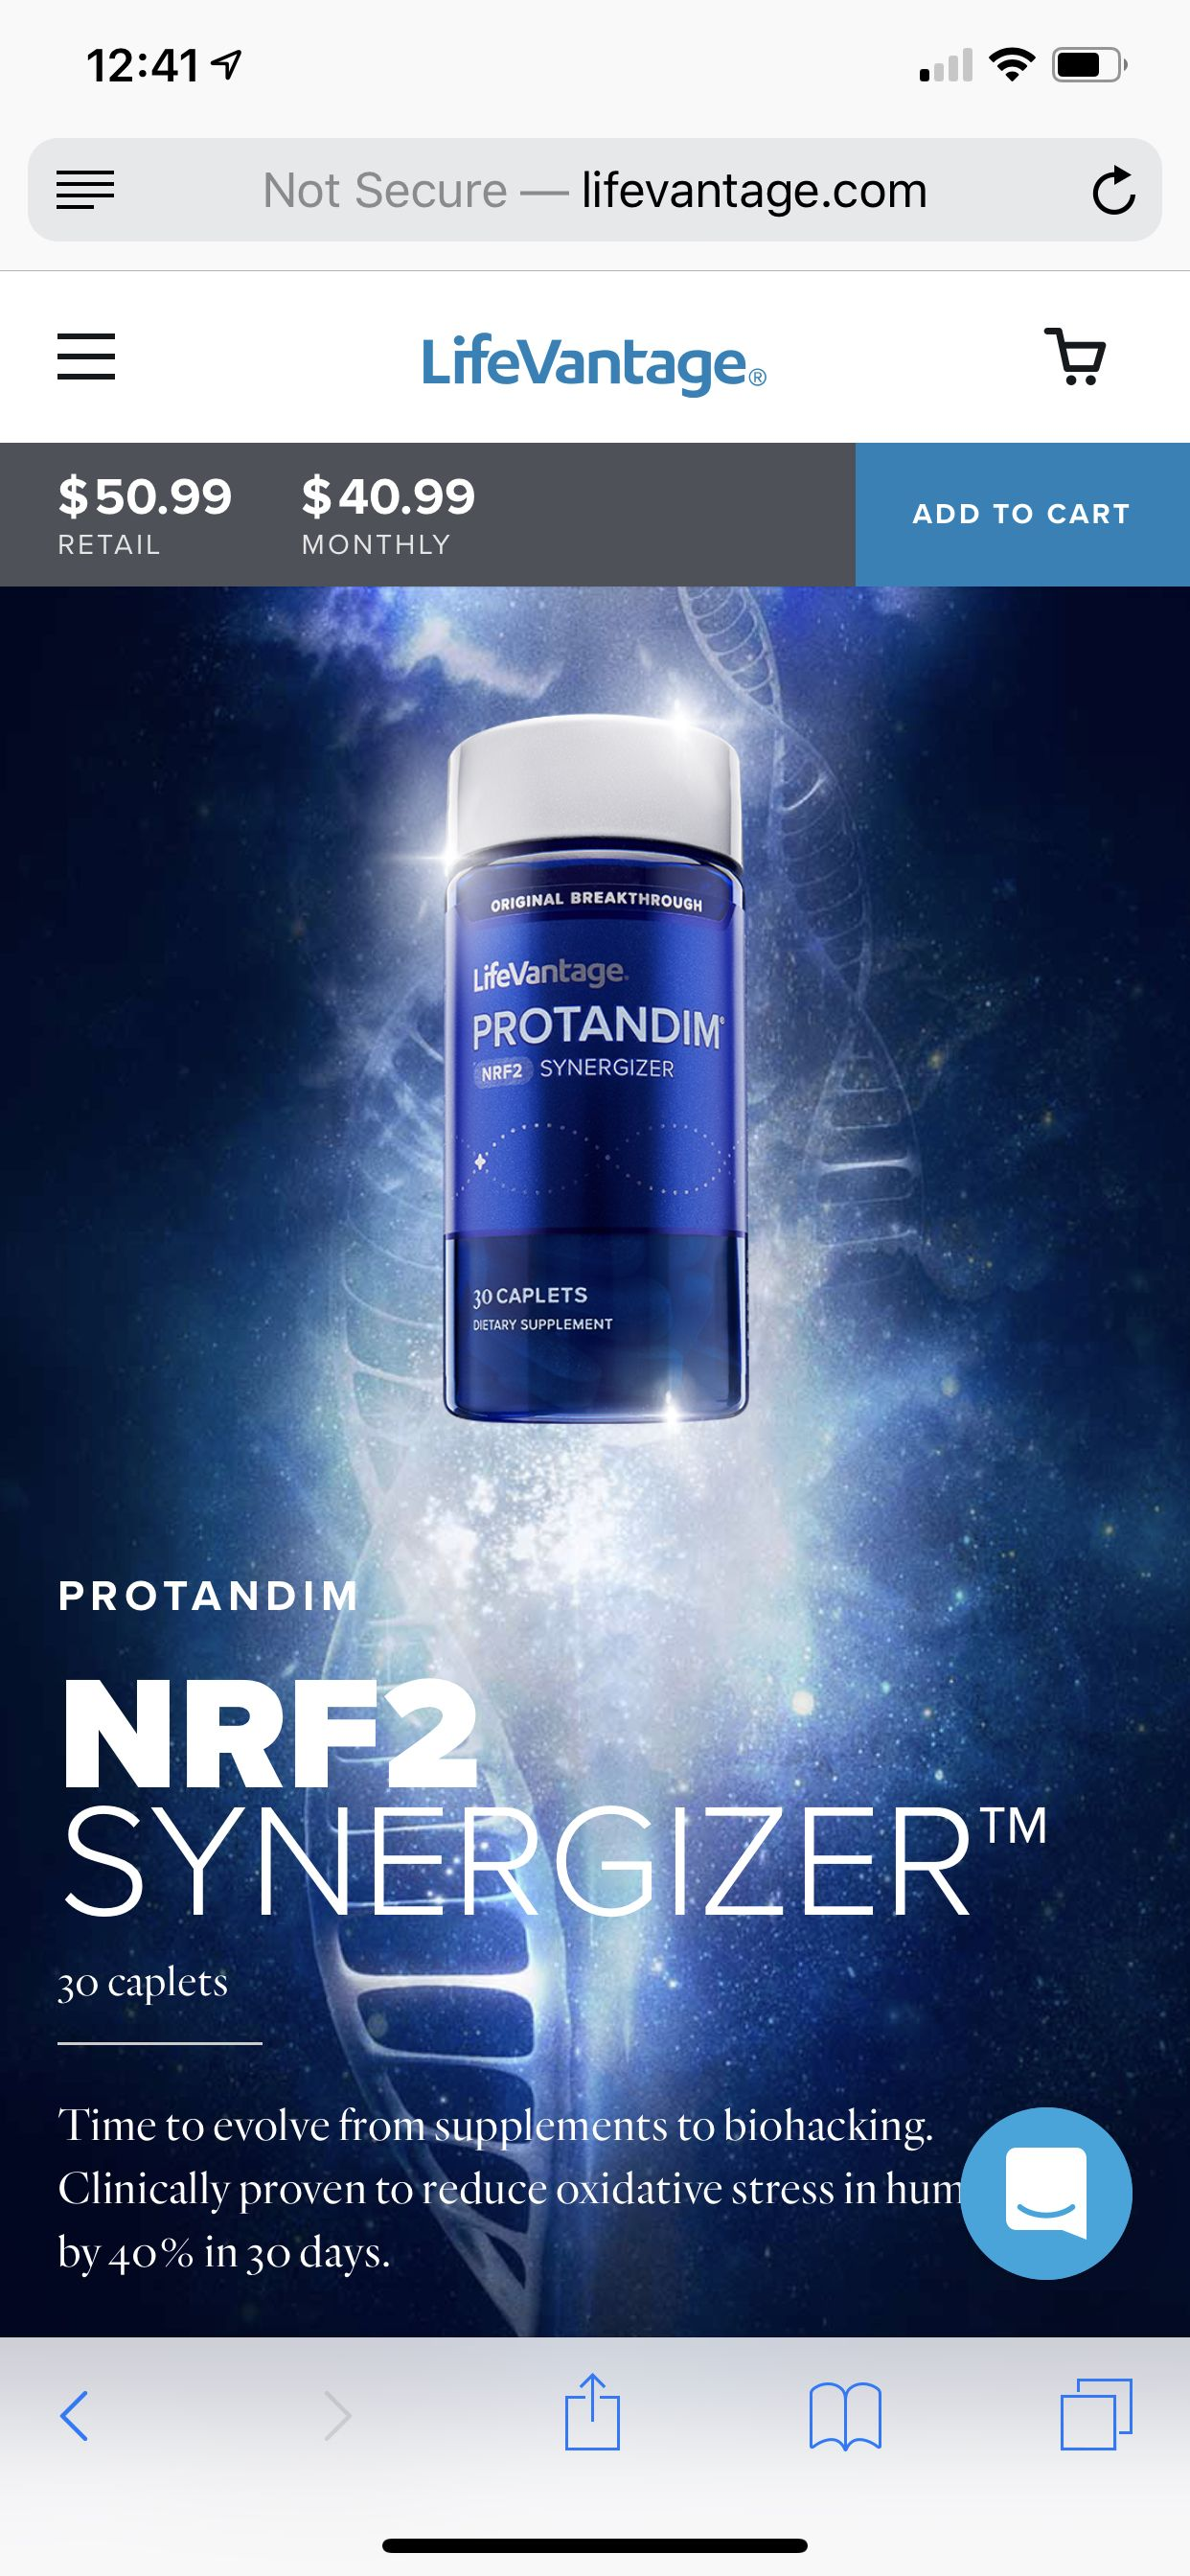 NRF2 is is supposed to help with oxidative stress